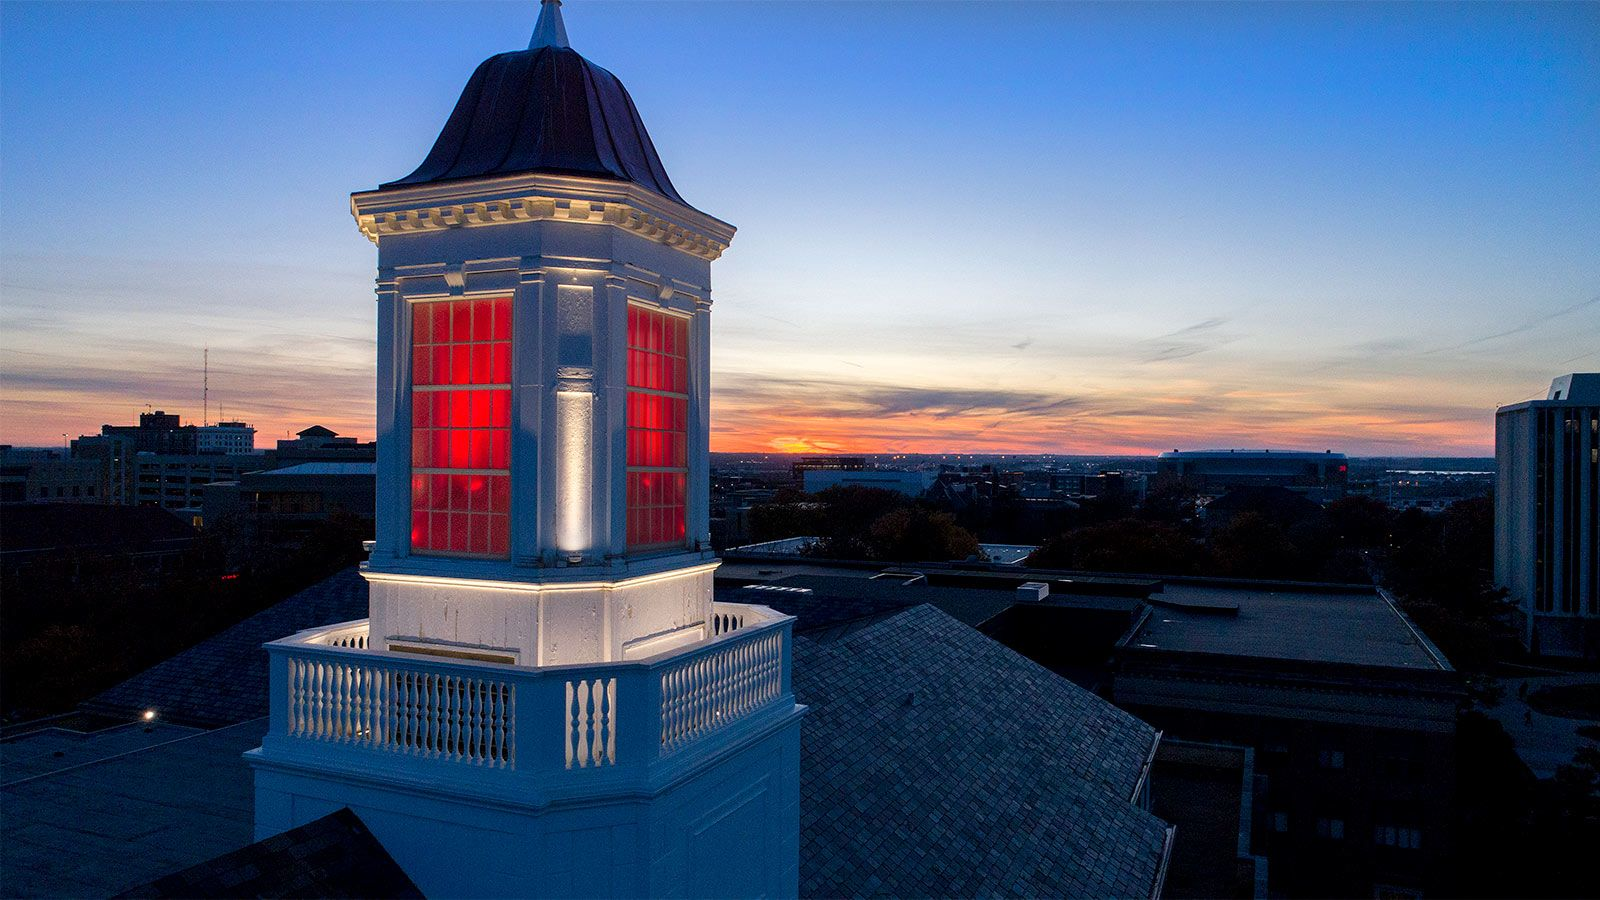 The cupola on top of Love Library lit up red